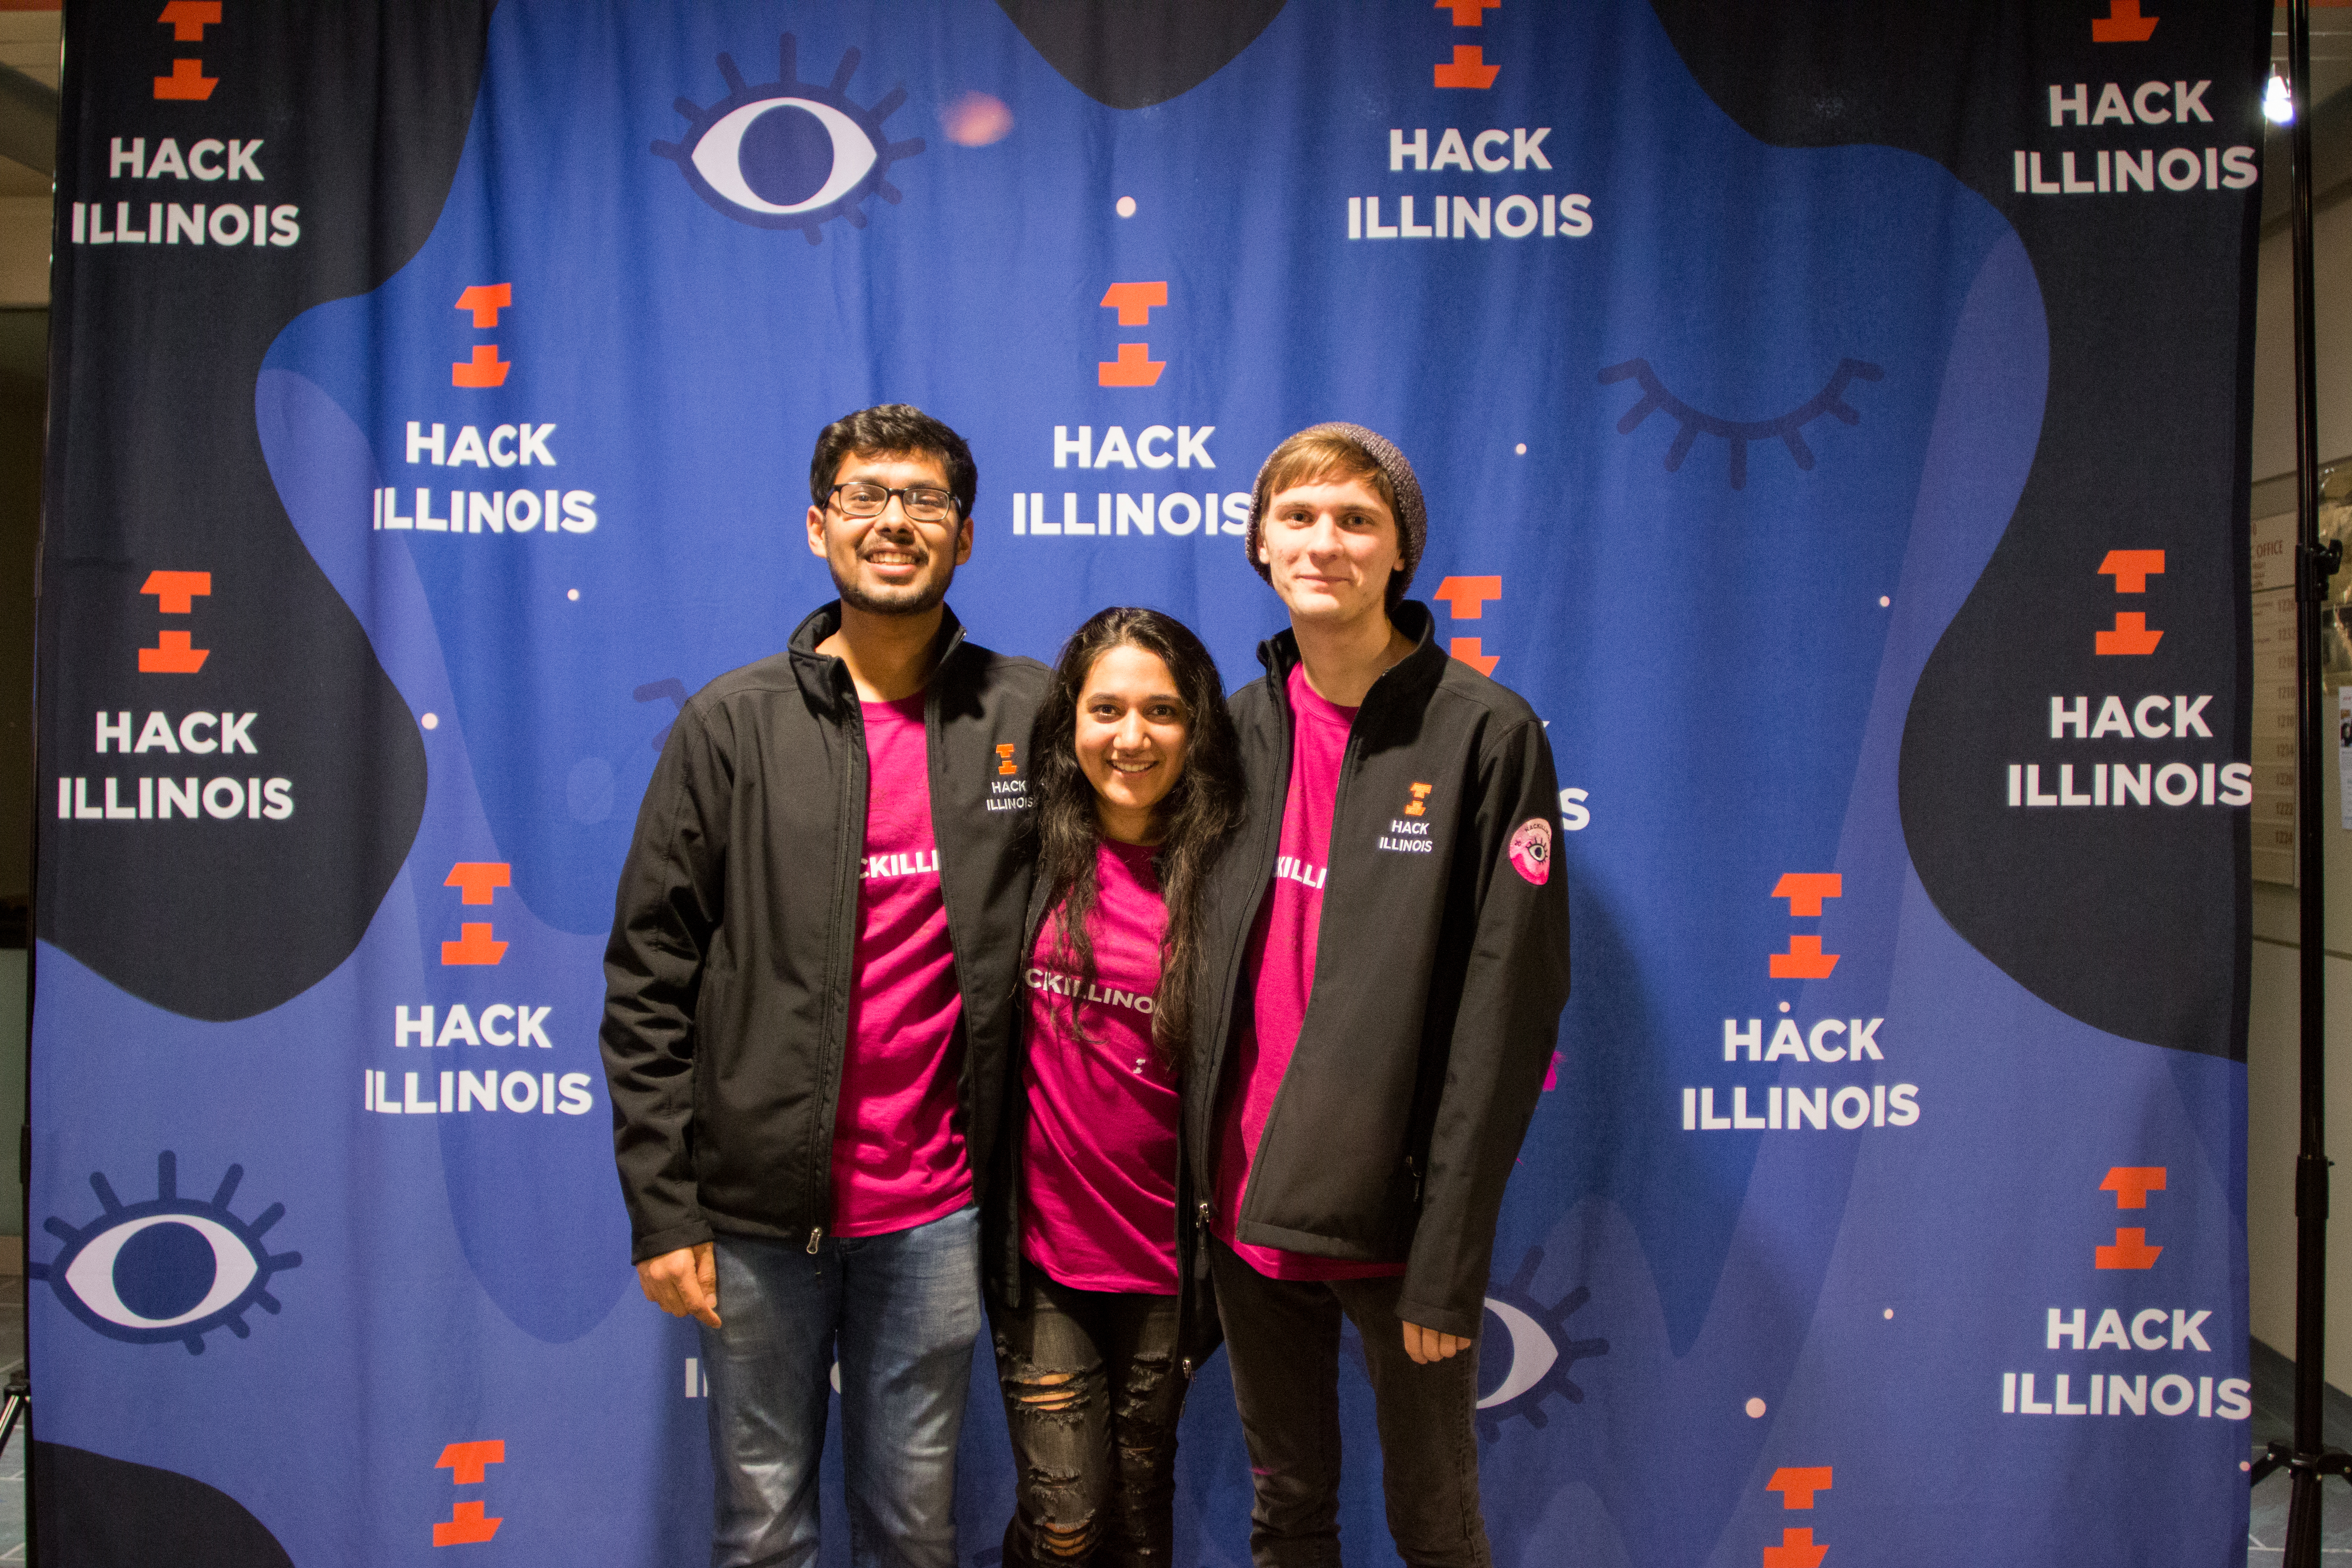 A group of HackIllinois 2018 staff members take a picture in front of the photobooth in their staff t-shirts and jackets.